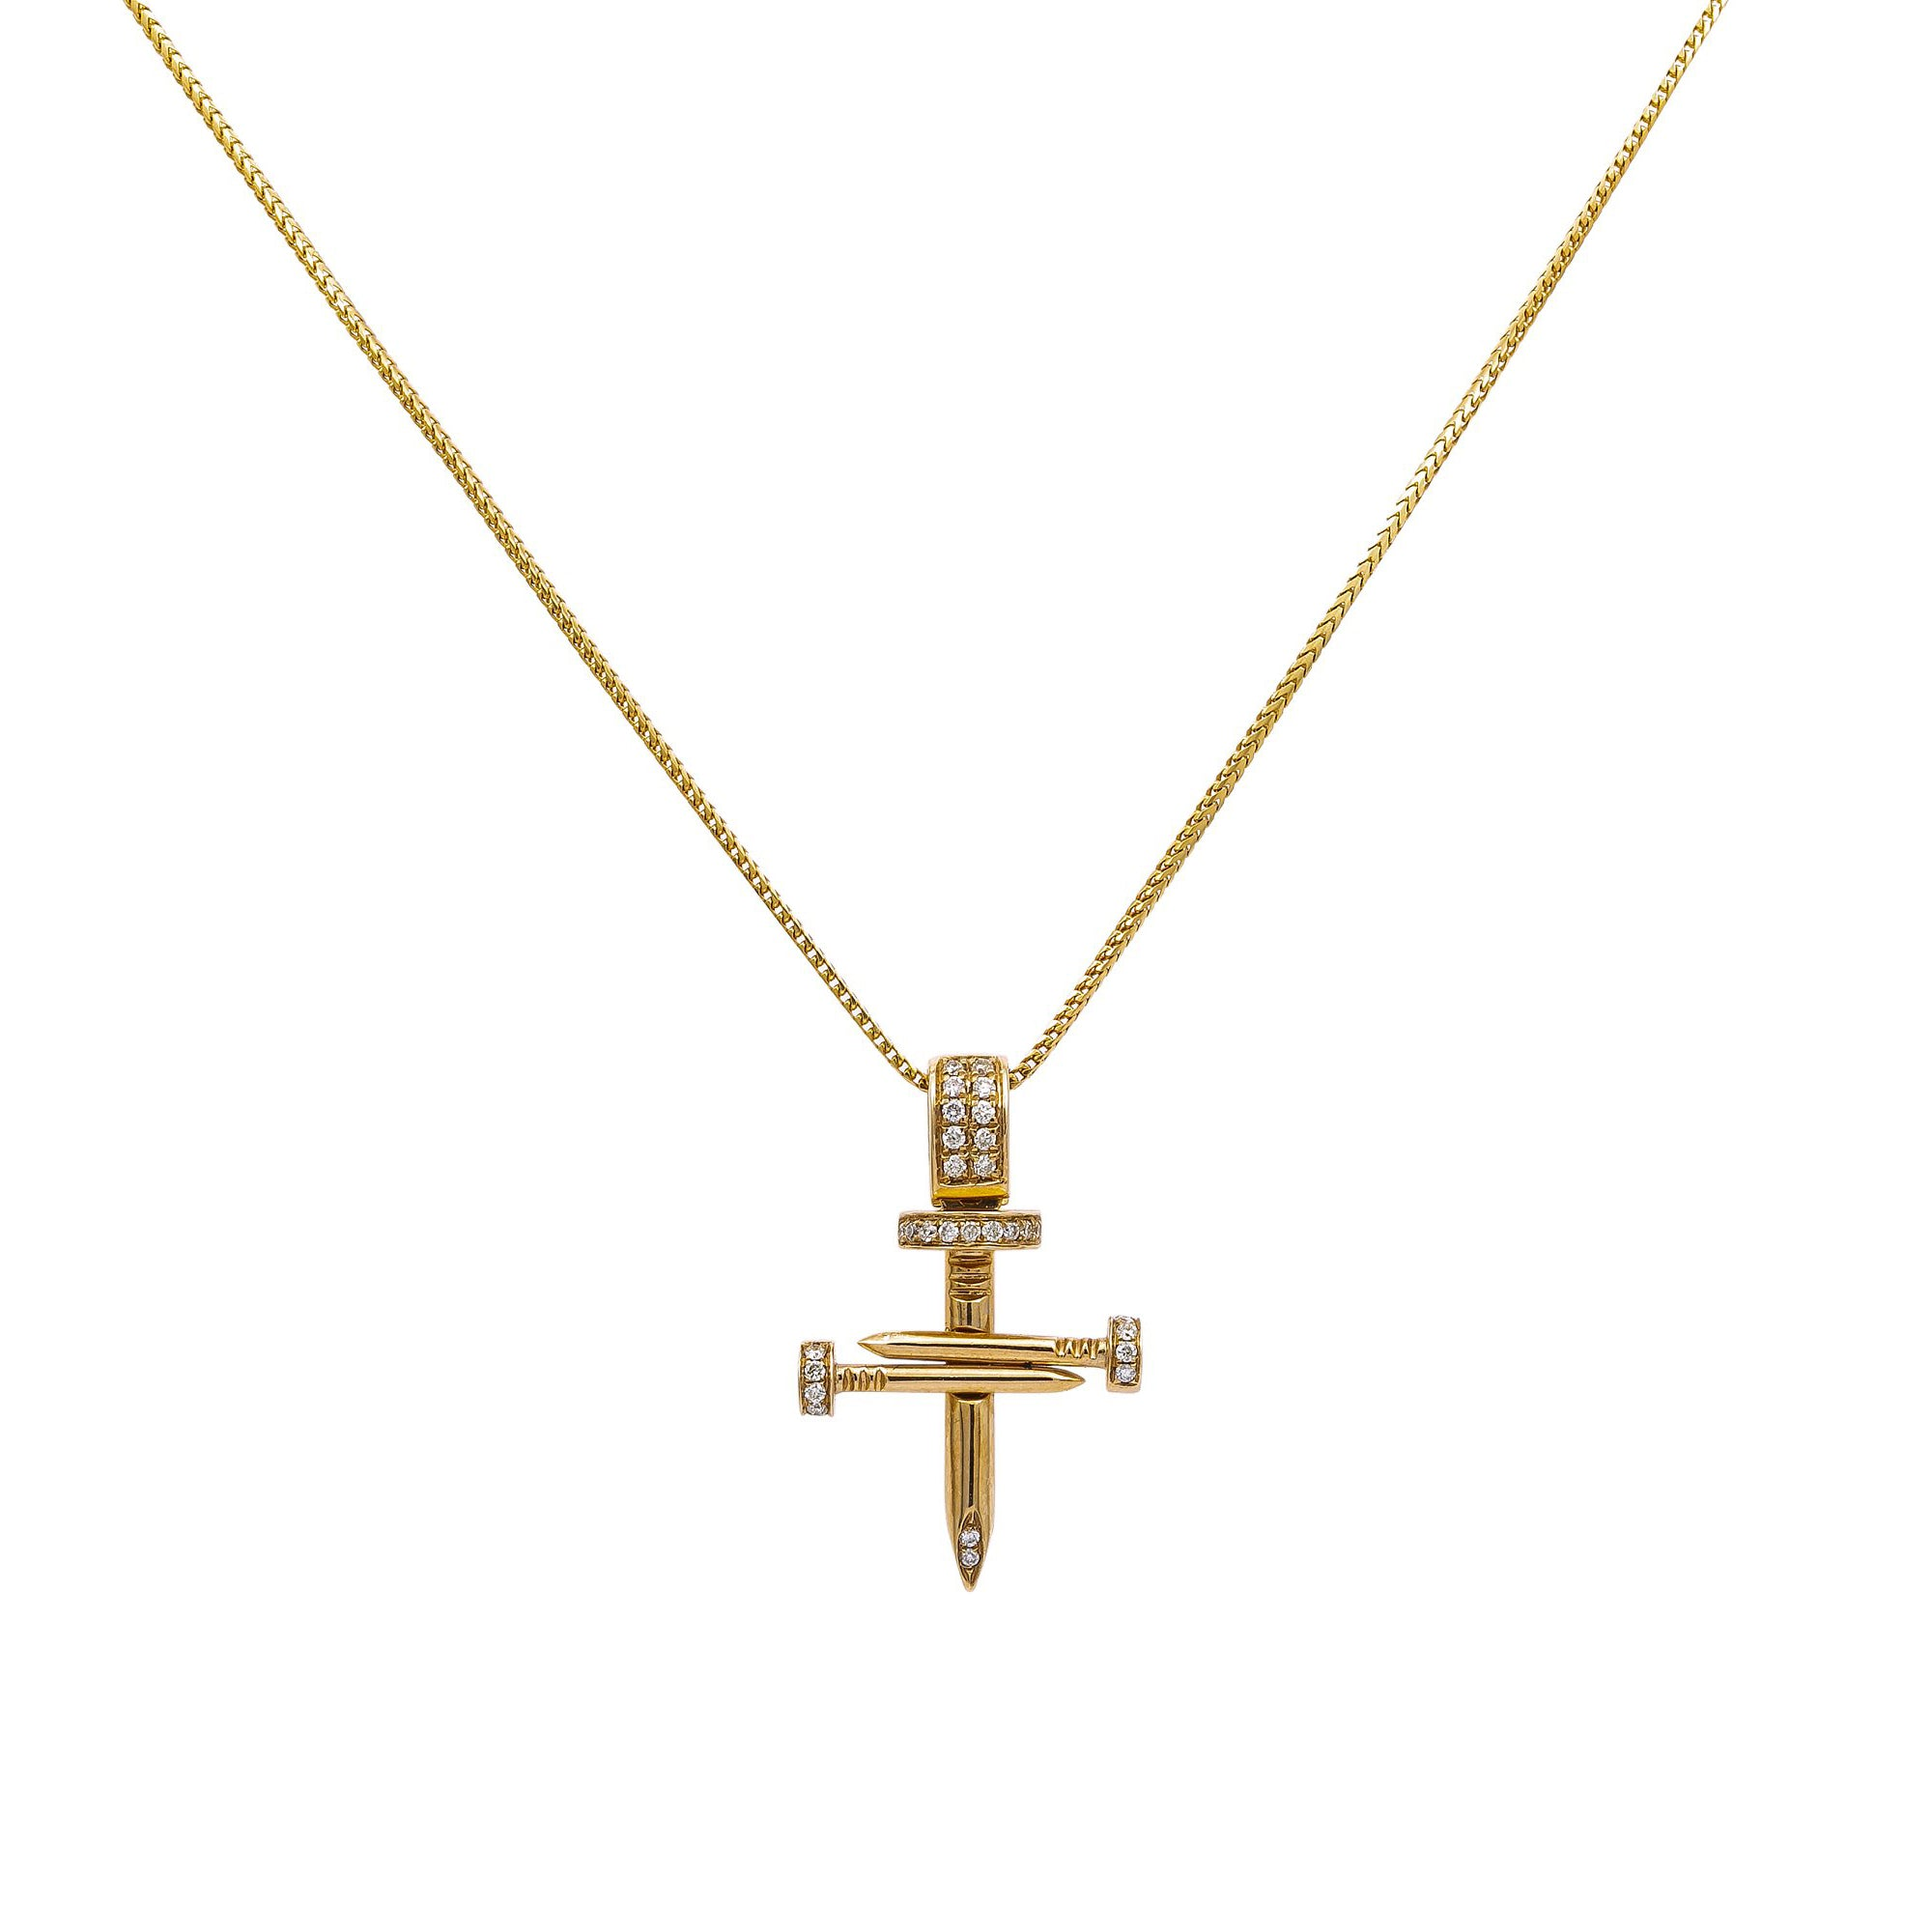 Unisex 14K YELLOW GOLD PENDANT WITH 0.8 CT DIAMONDS